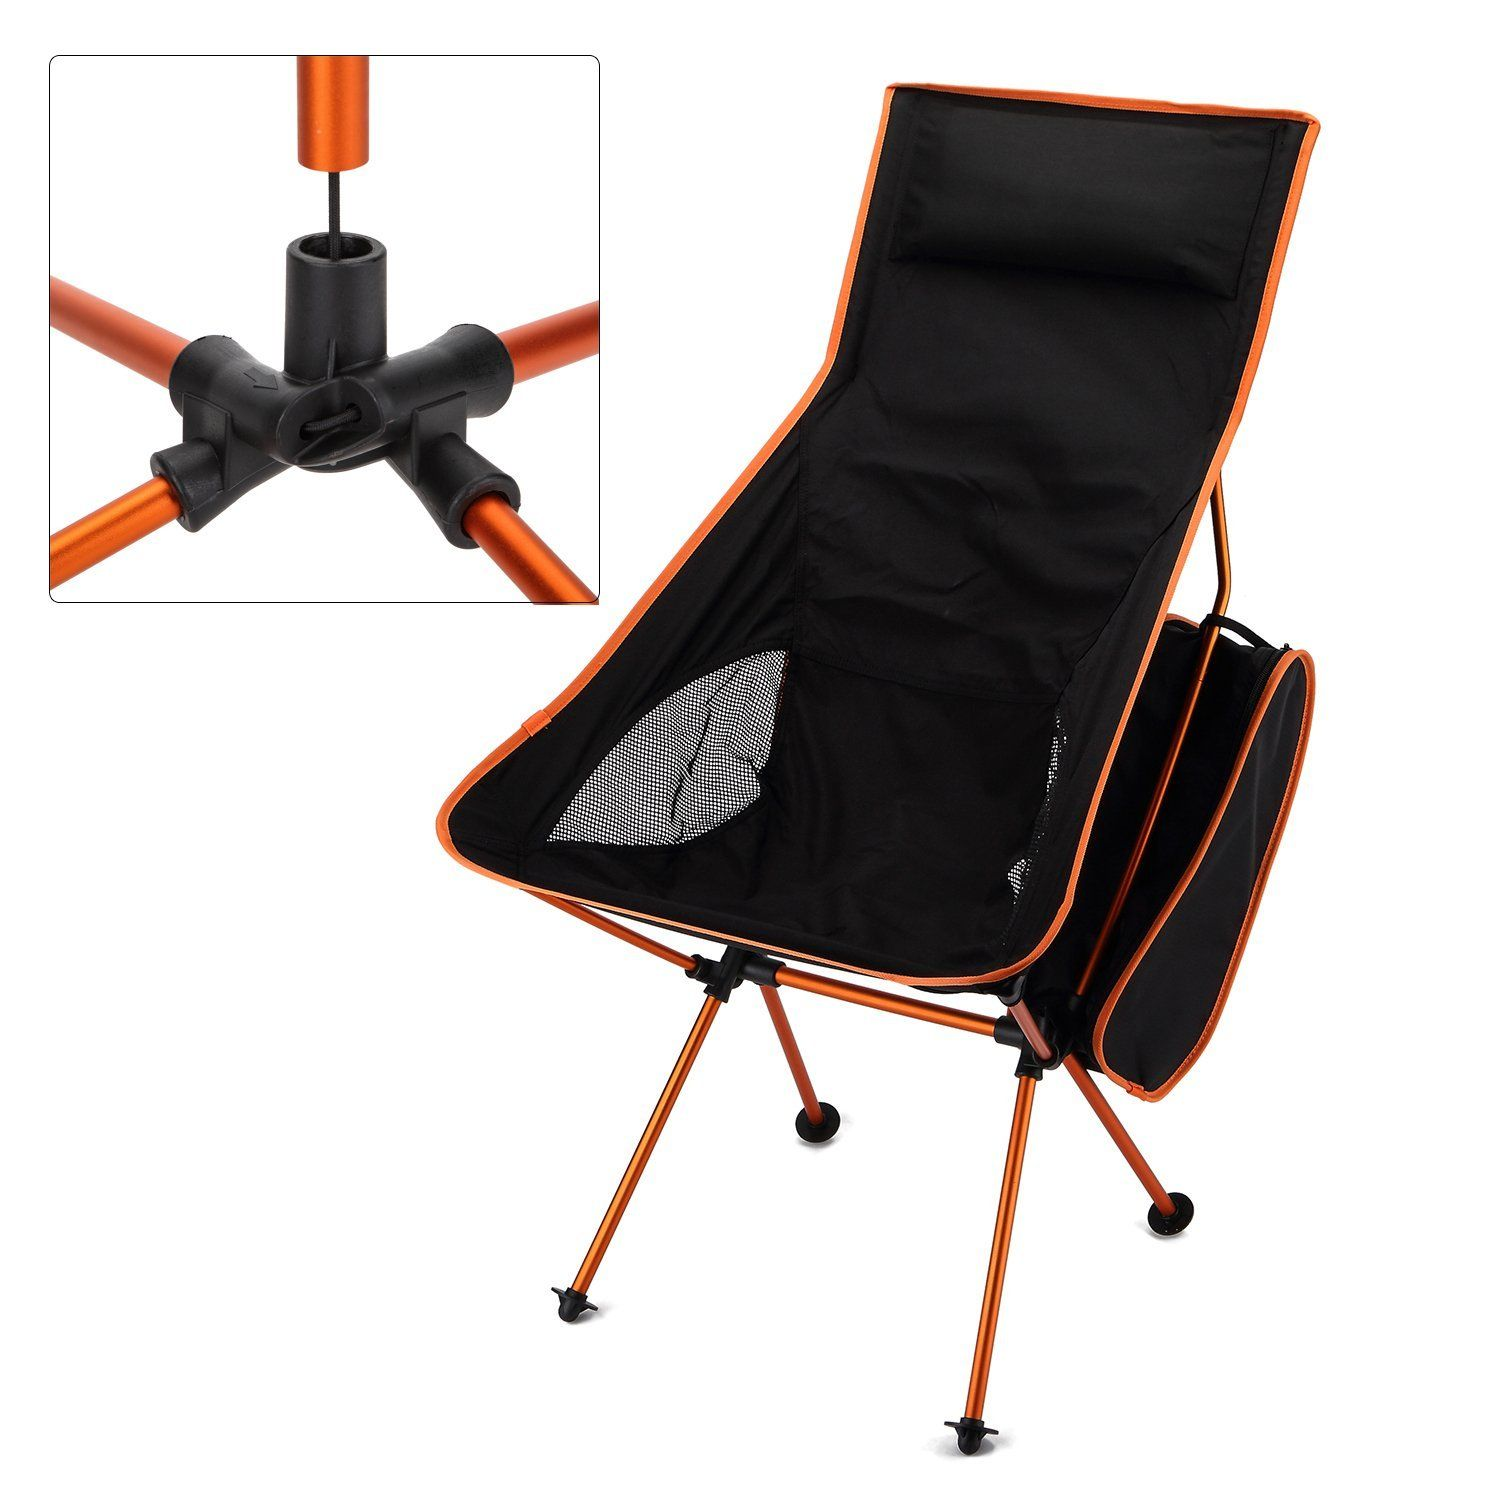 Yahill New Design/Extended Portable Ultralight Collapsible